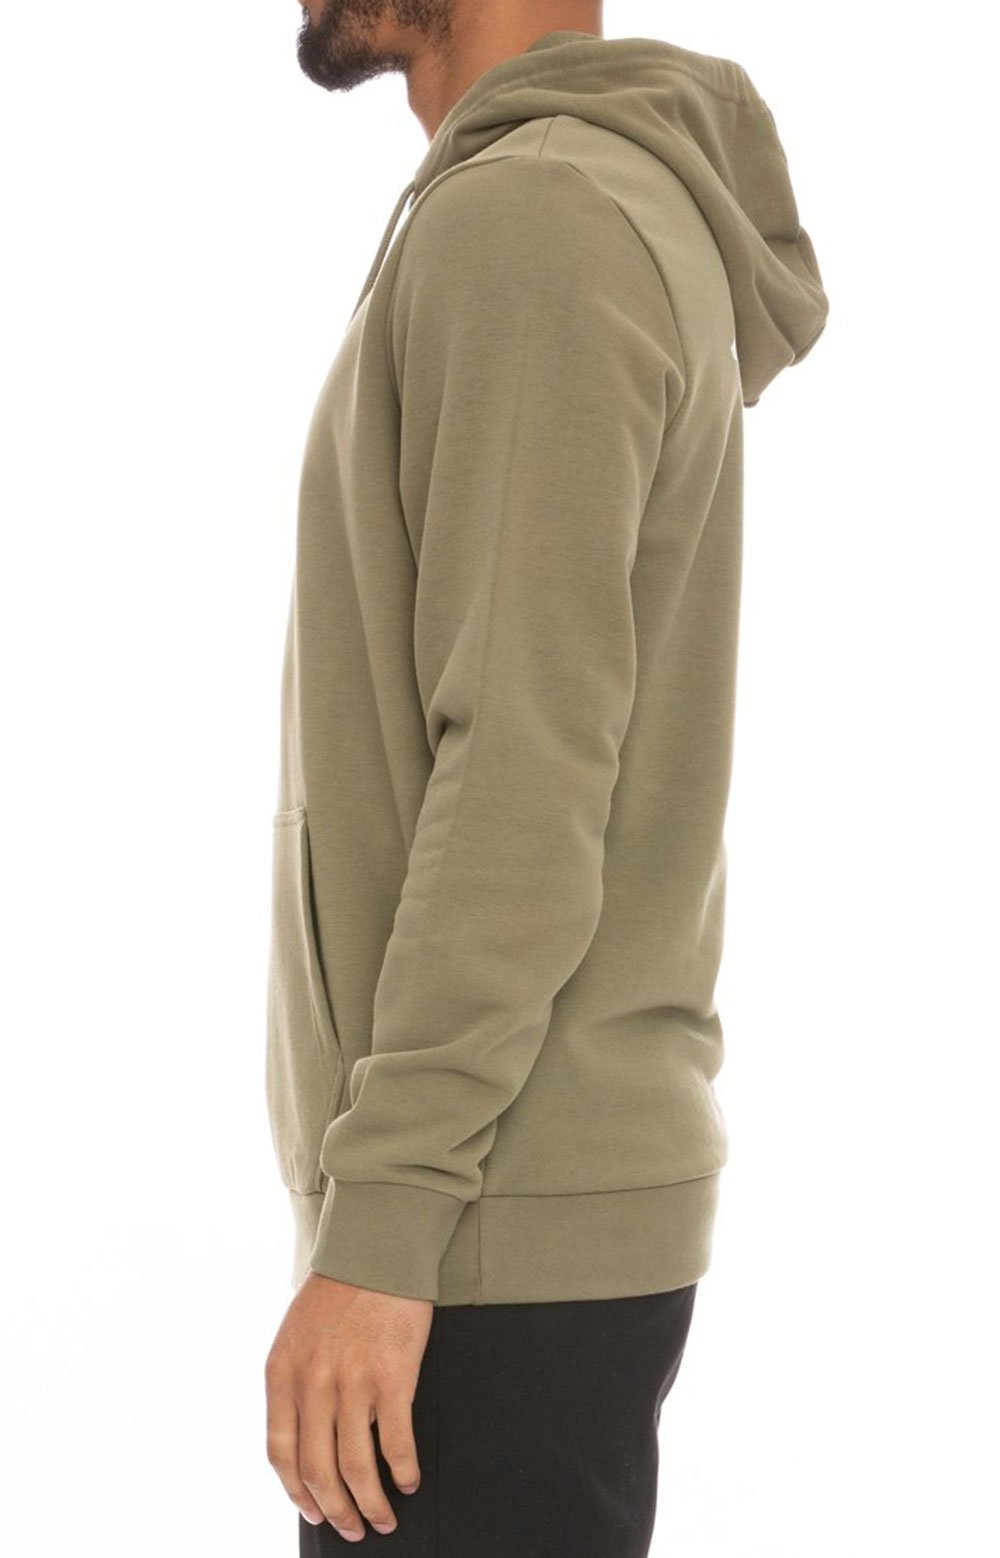 Authentic Haris Pullover Hoodie - Olive Green/Light Green/White  3